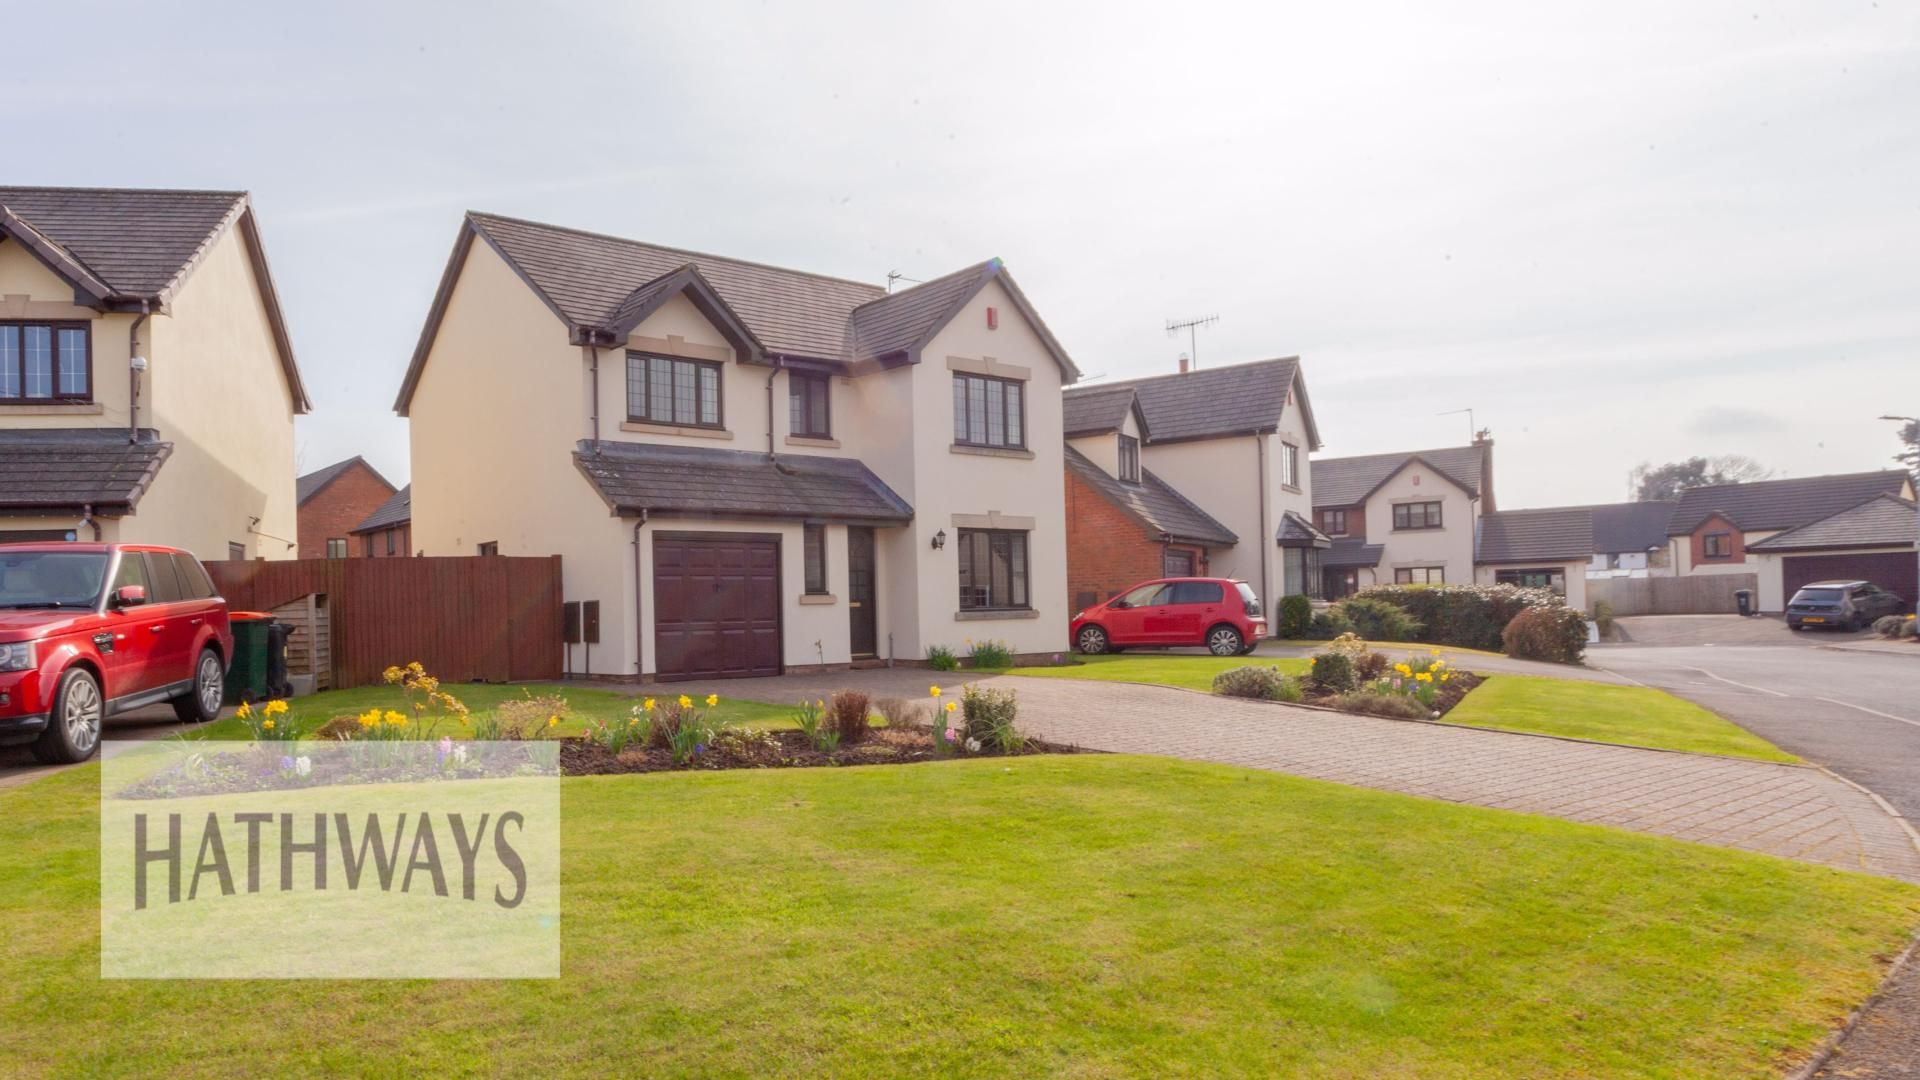 4 bed house for sale in East Lynne Gardens - Property Image 1